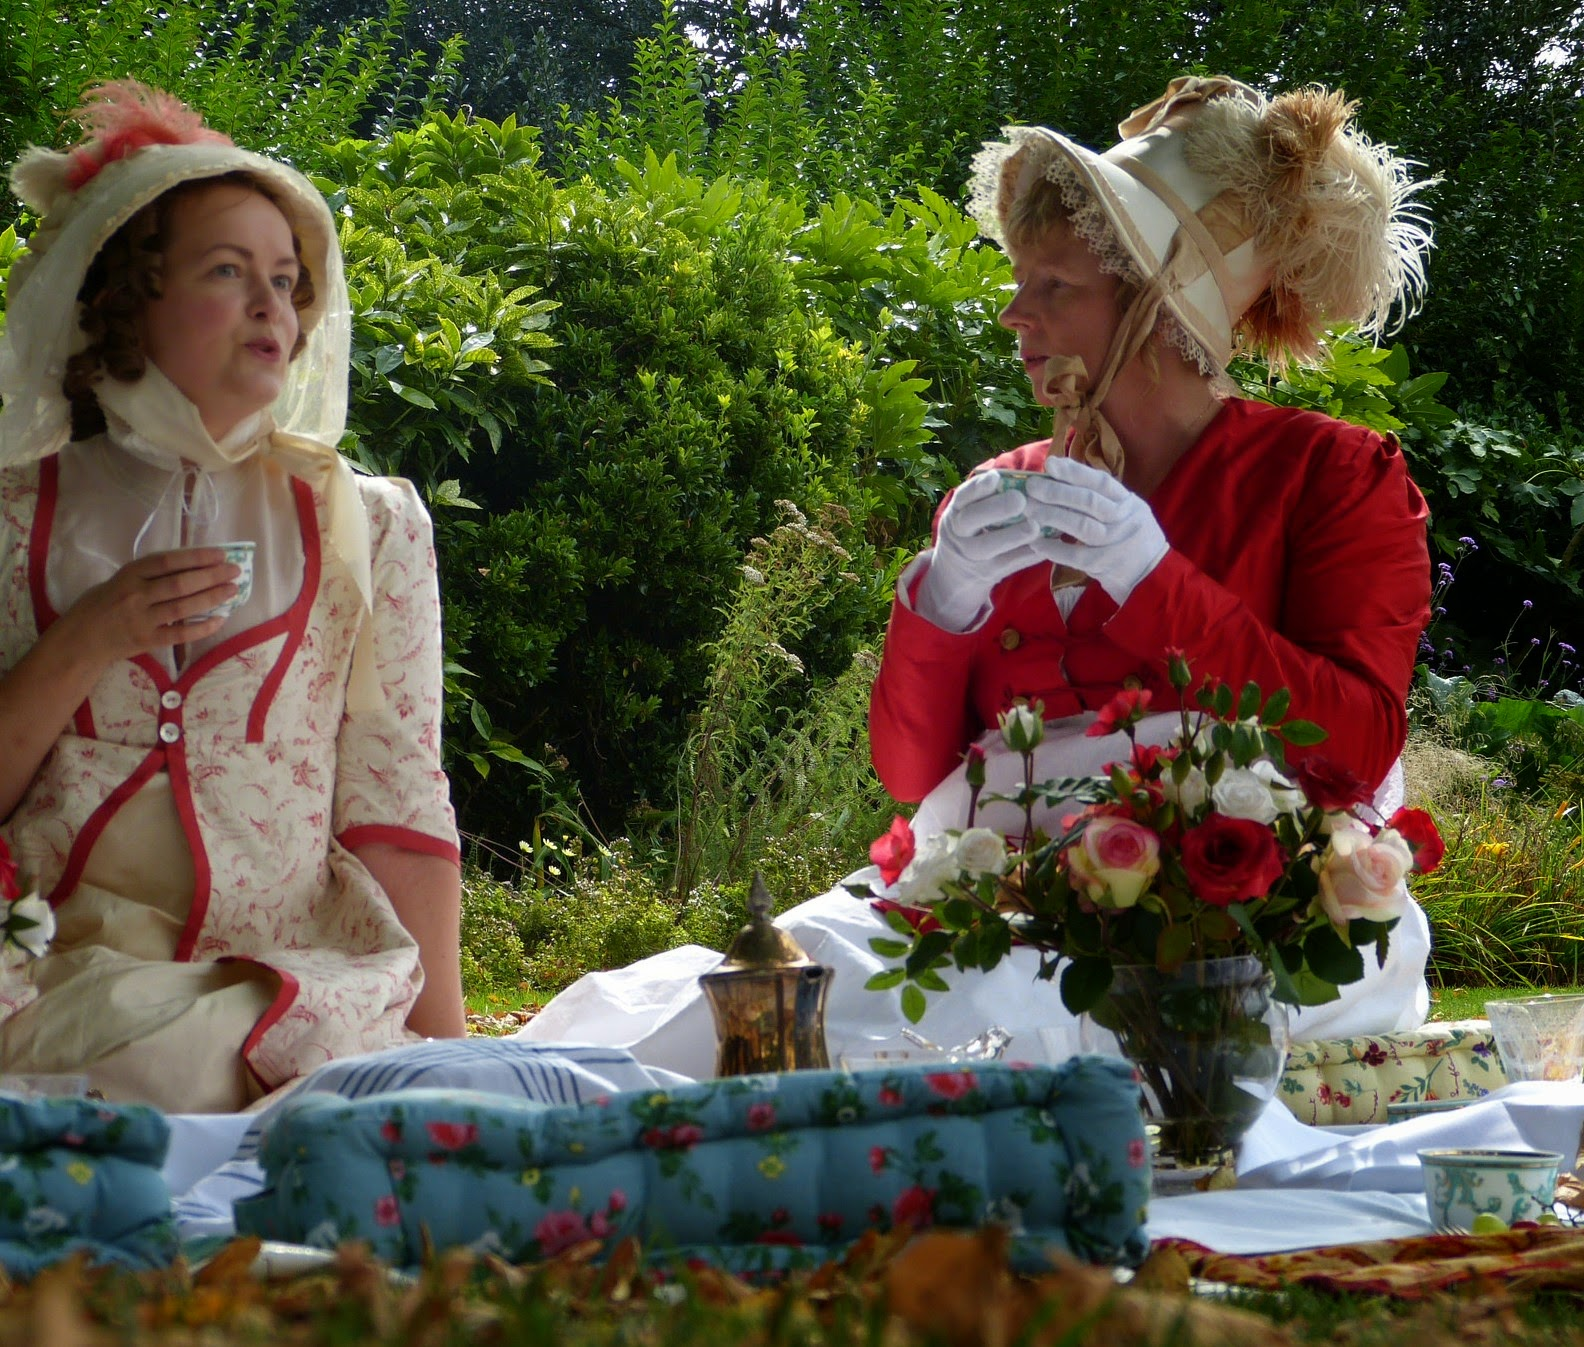 A Regency picnic in the park